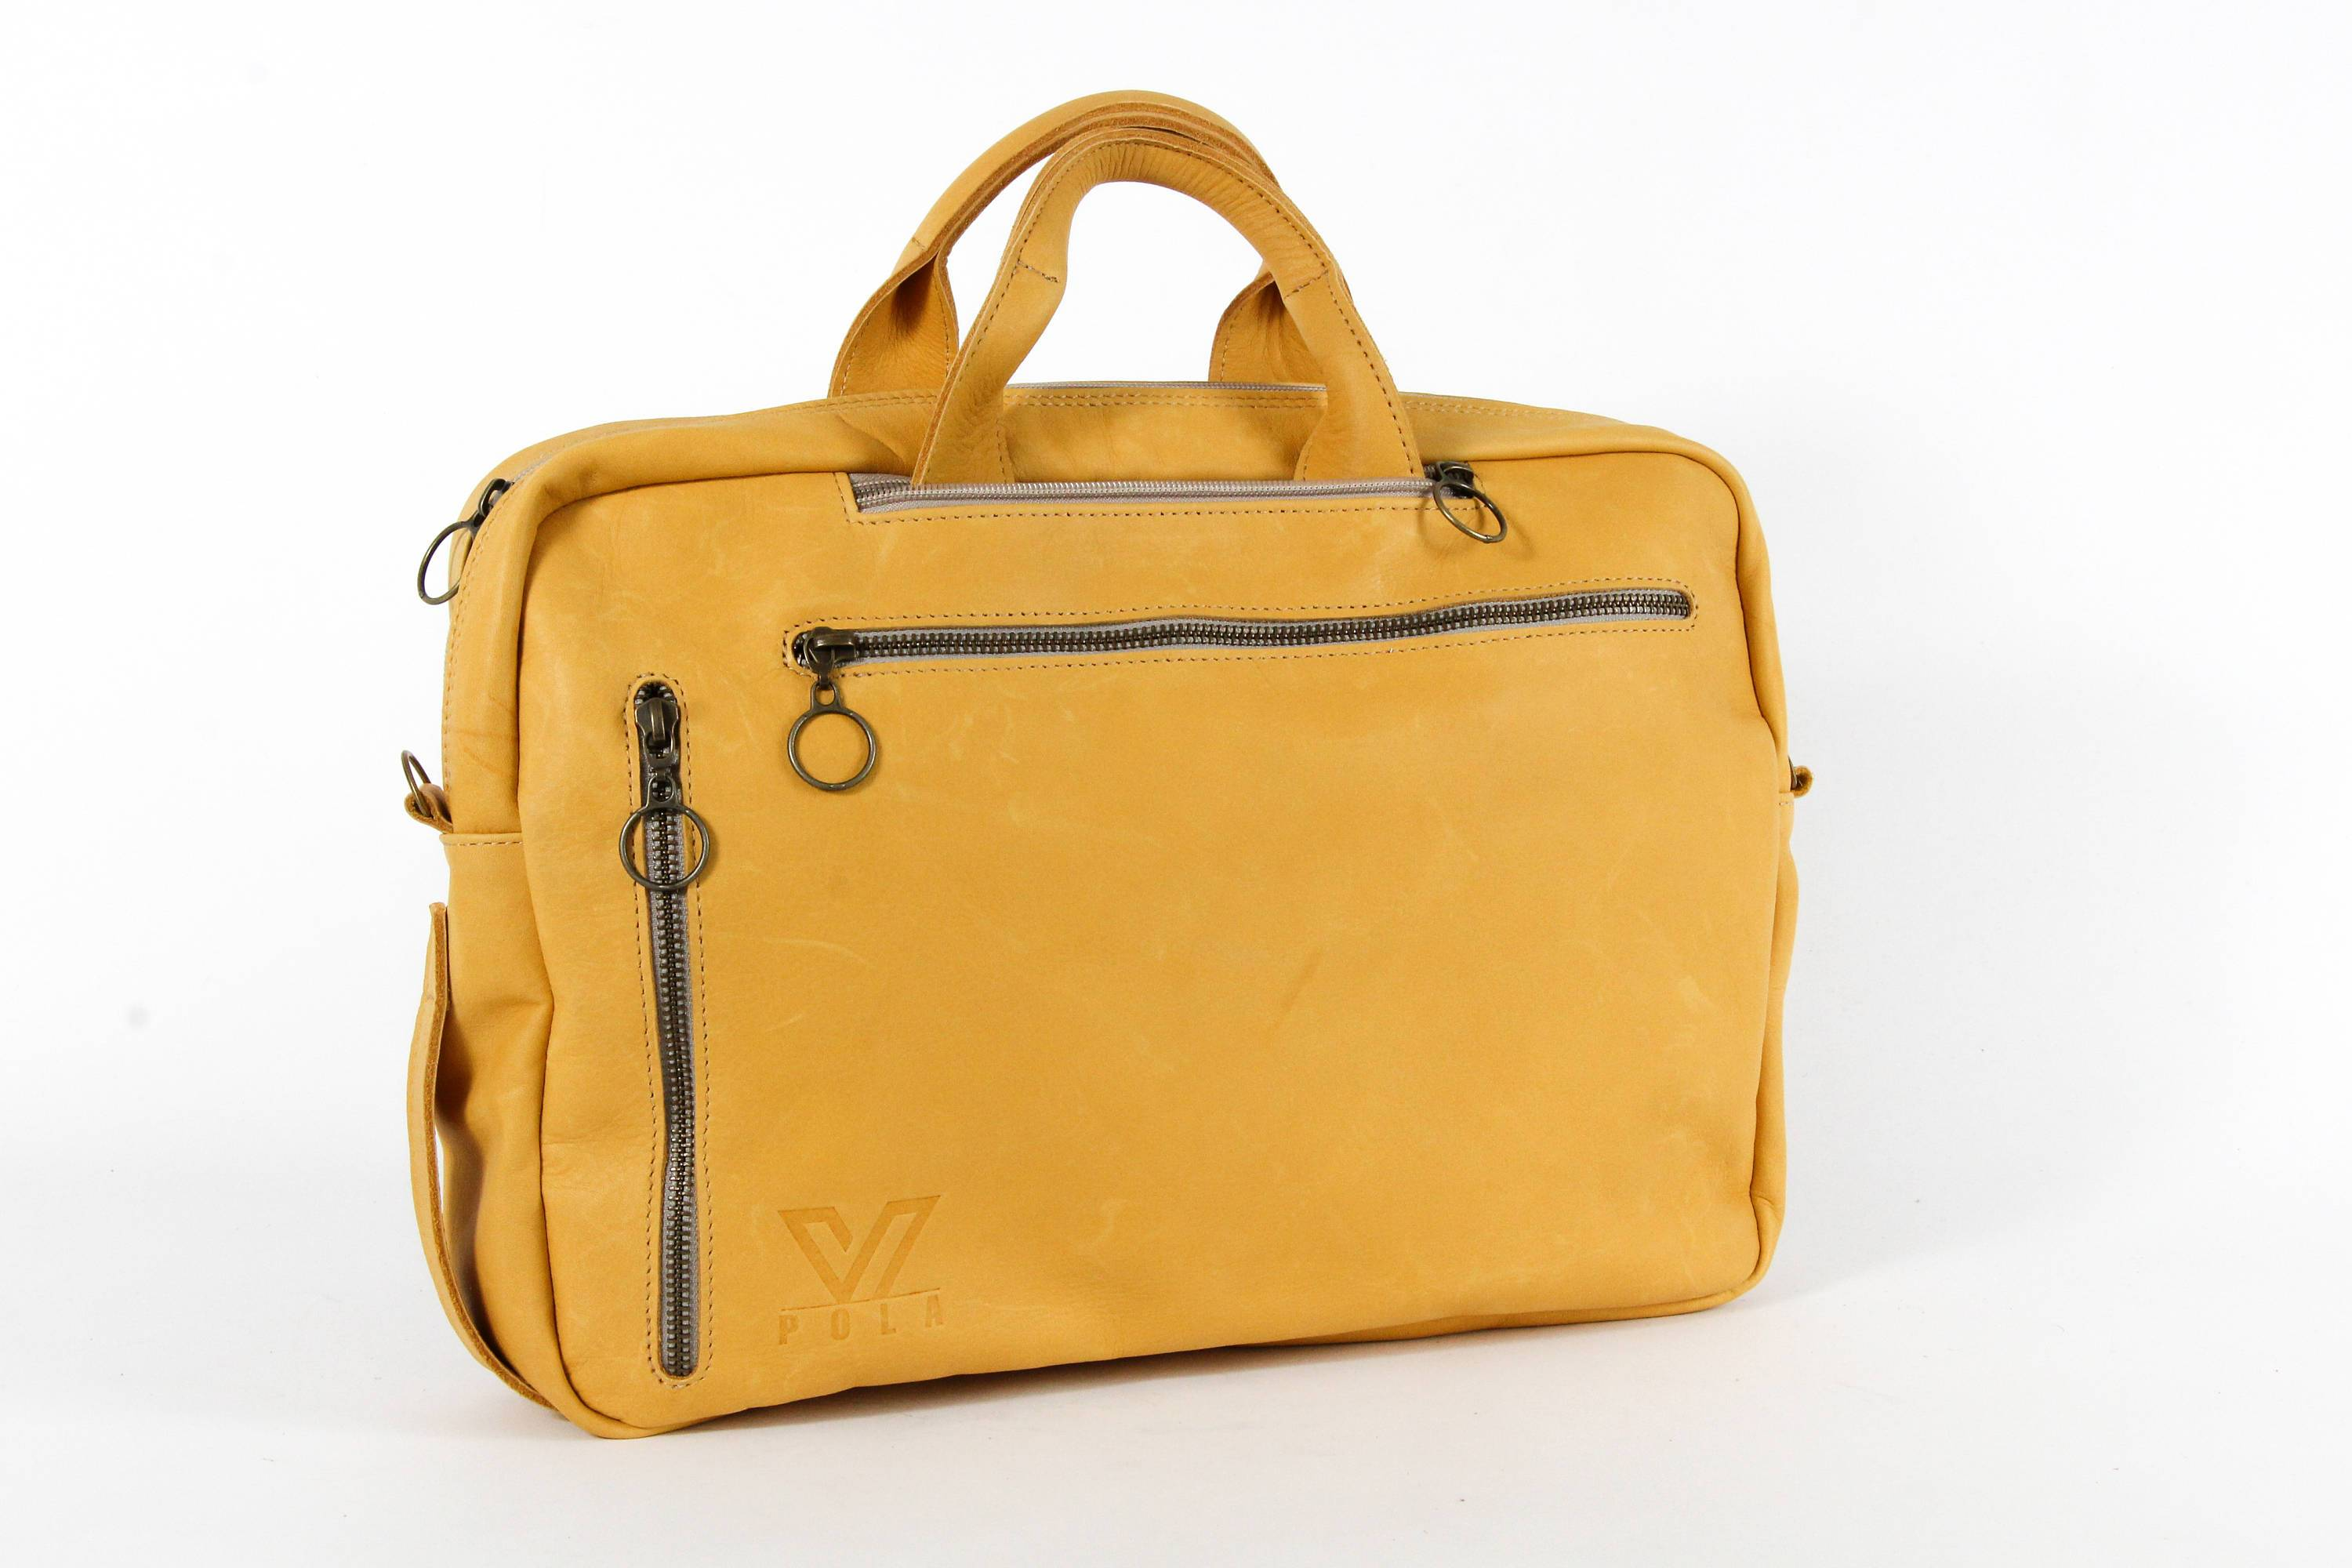 Carrying the designer laptop bags to work